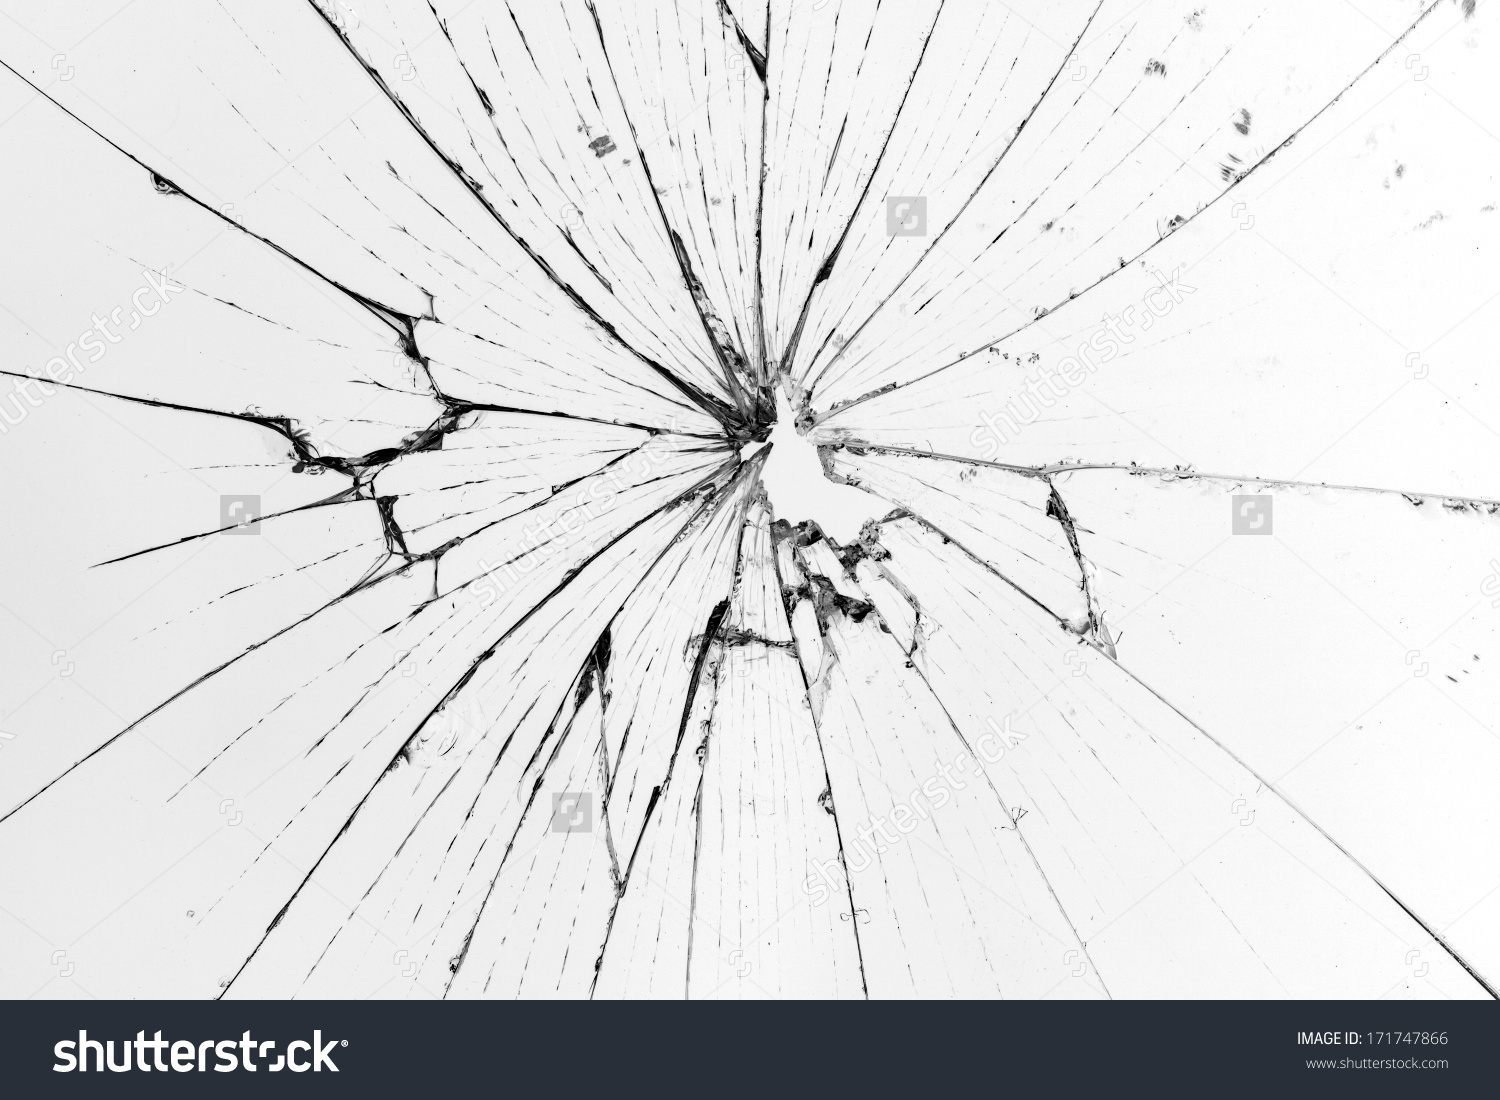 hight resolution of save to a lightbox broken glass clipart